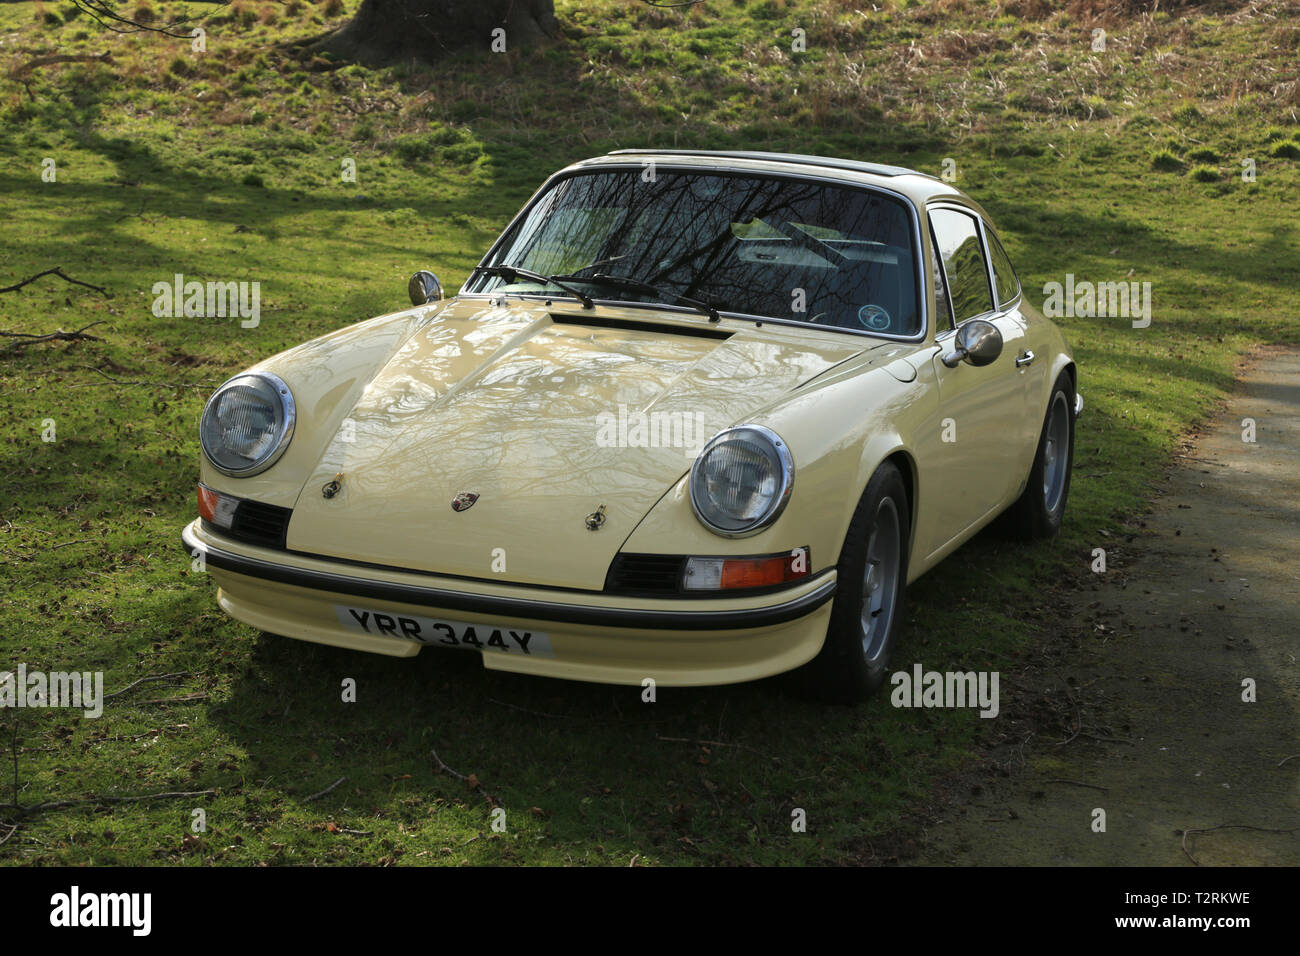 Garage Porsche Strasbourg Porsche 911 Parked In Car Stock Photos Porsche 911 Parked In Car